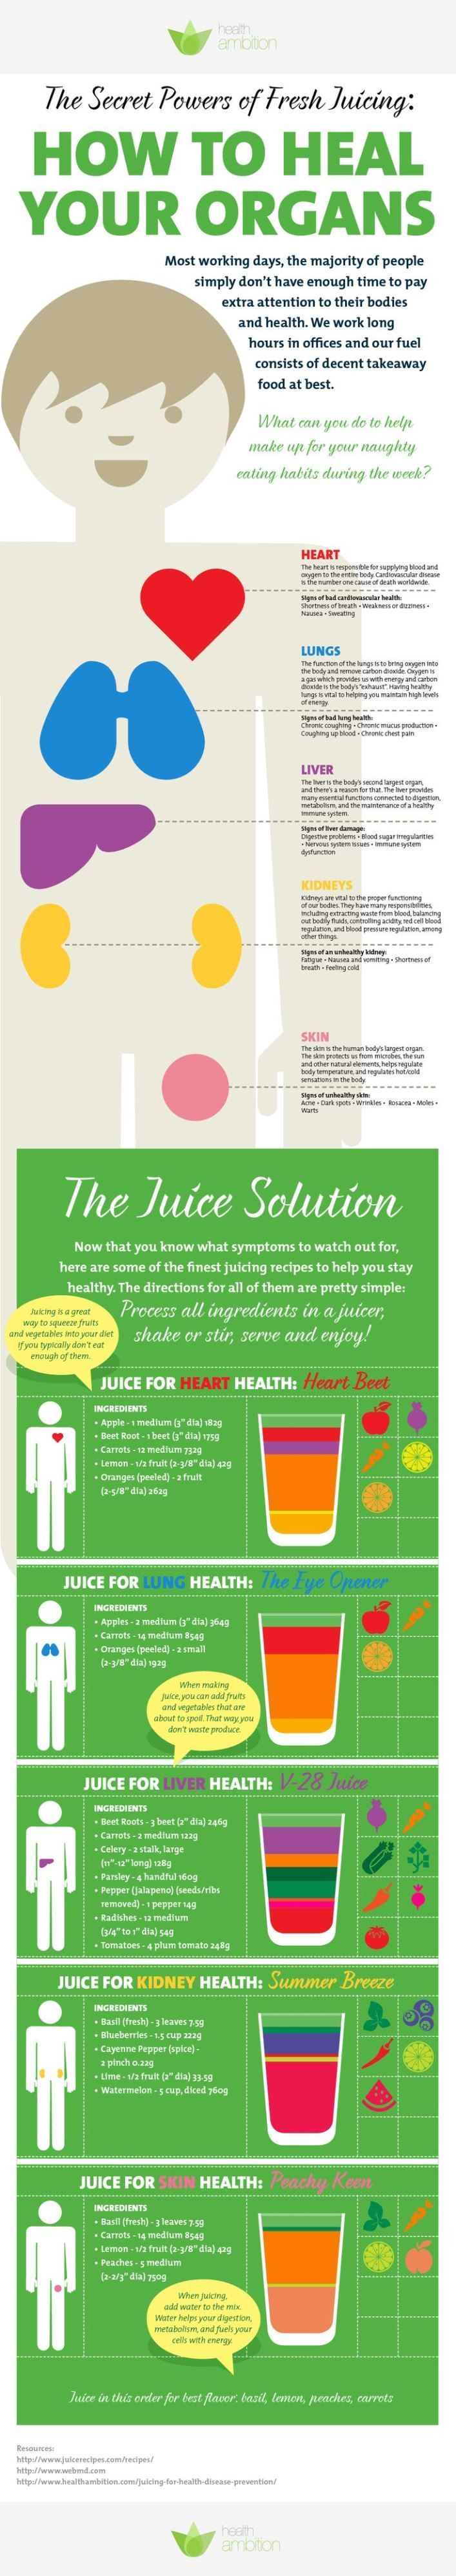 Juicing to Help Heal Your Organs : How to Heal Your Organs with the Secret Powers of Fruits & Vegetables (Fresh Juice)While many don't advocate juicing all the time for every ailment, this infographic offers up the fruits and veggies that can, indeed, support the health of your various organs.You can also use this as […]